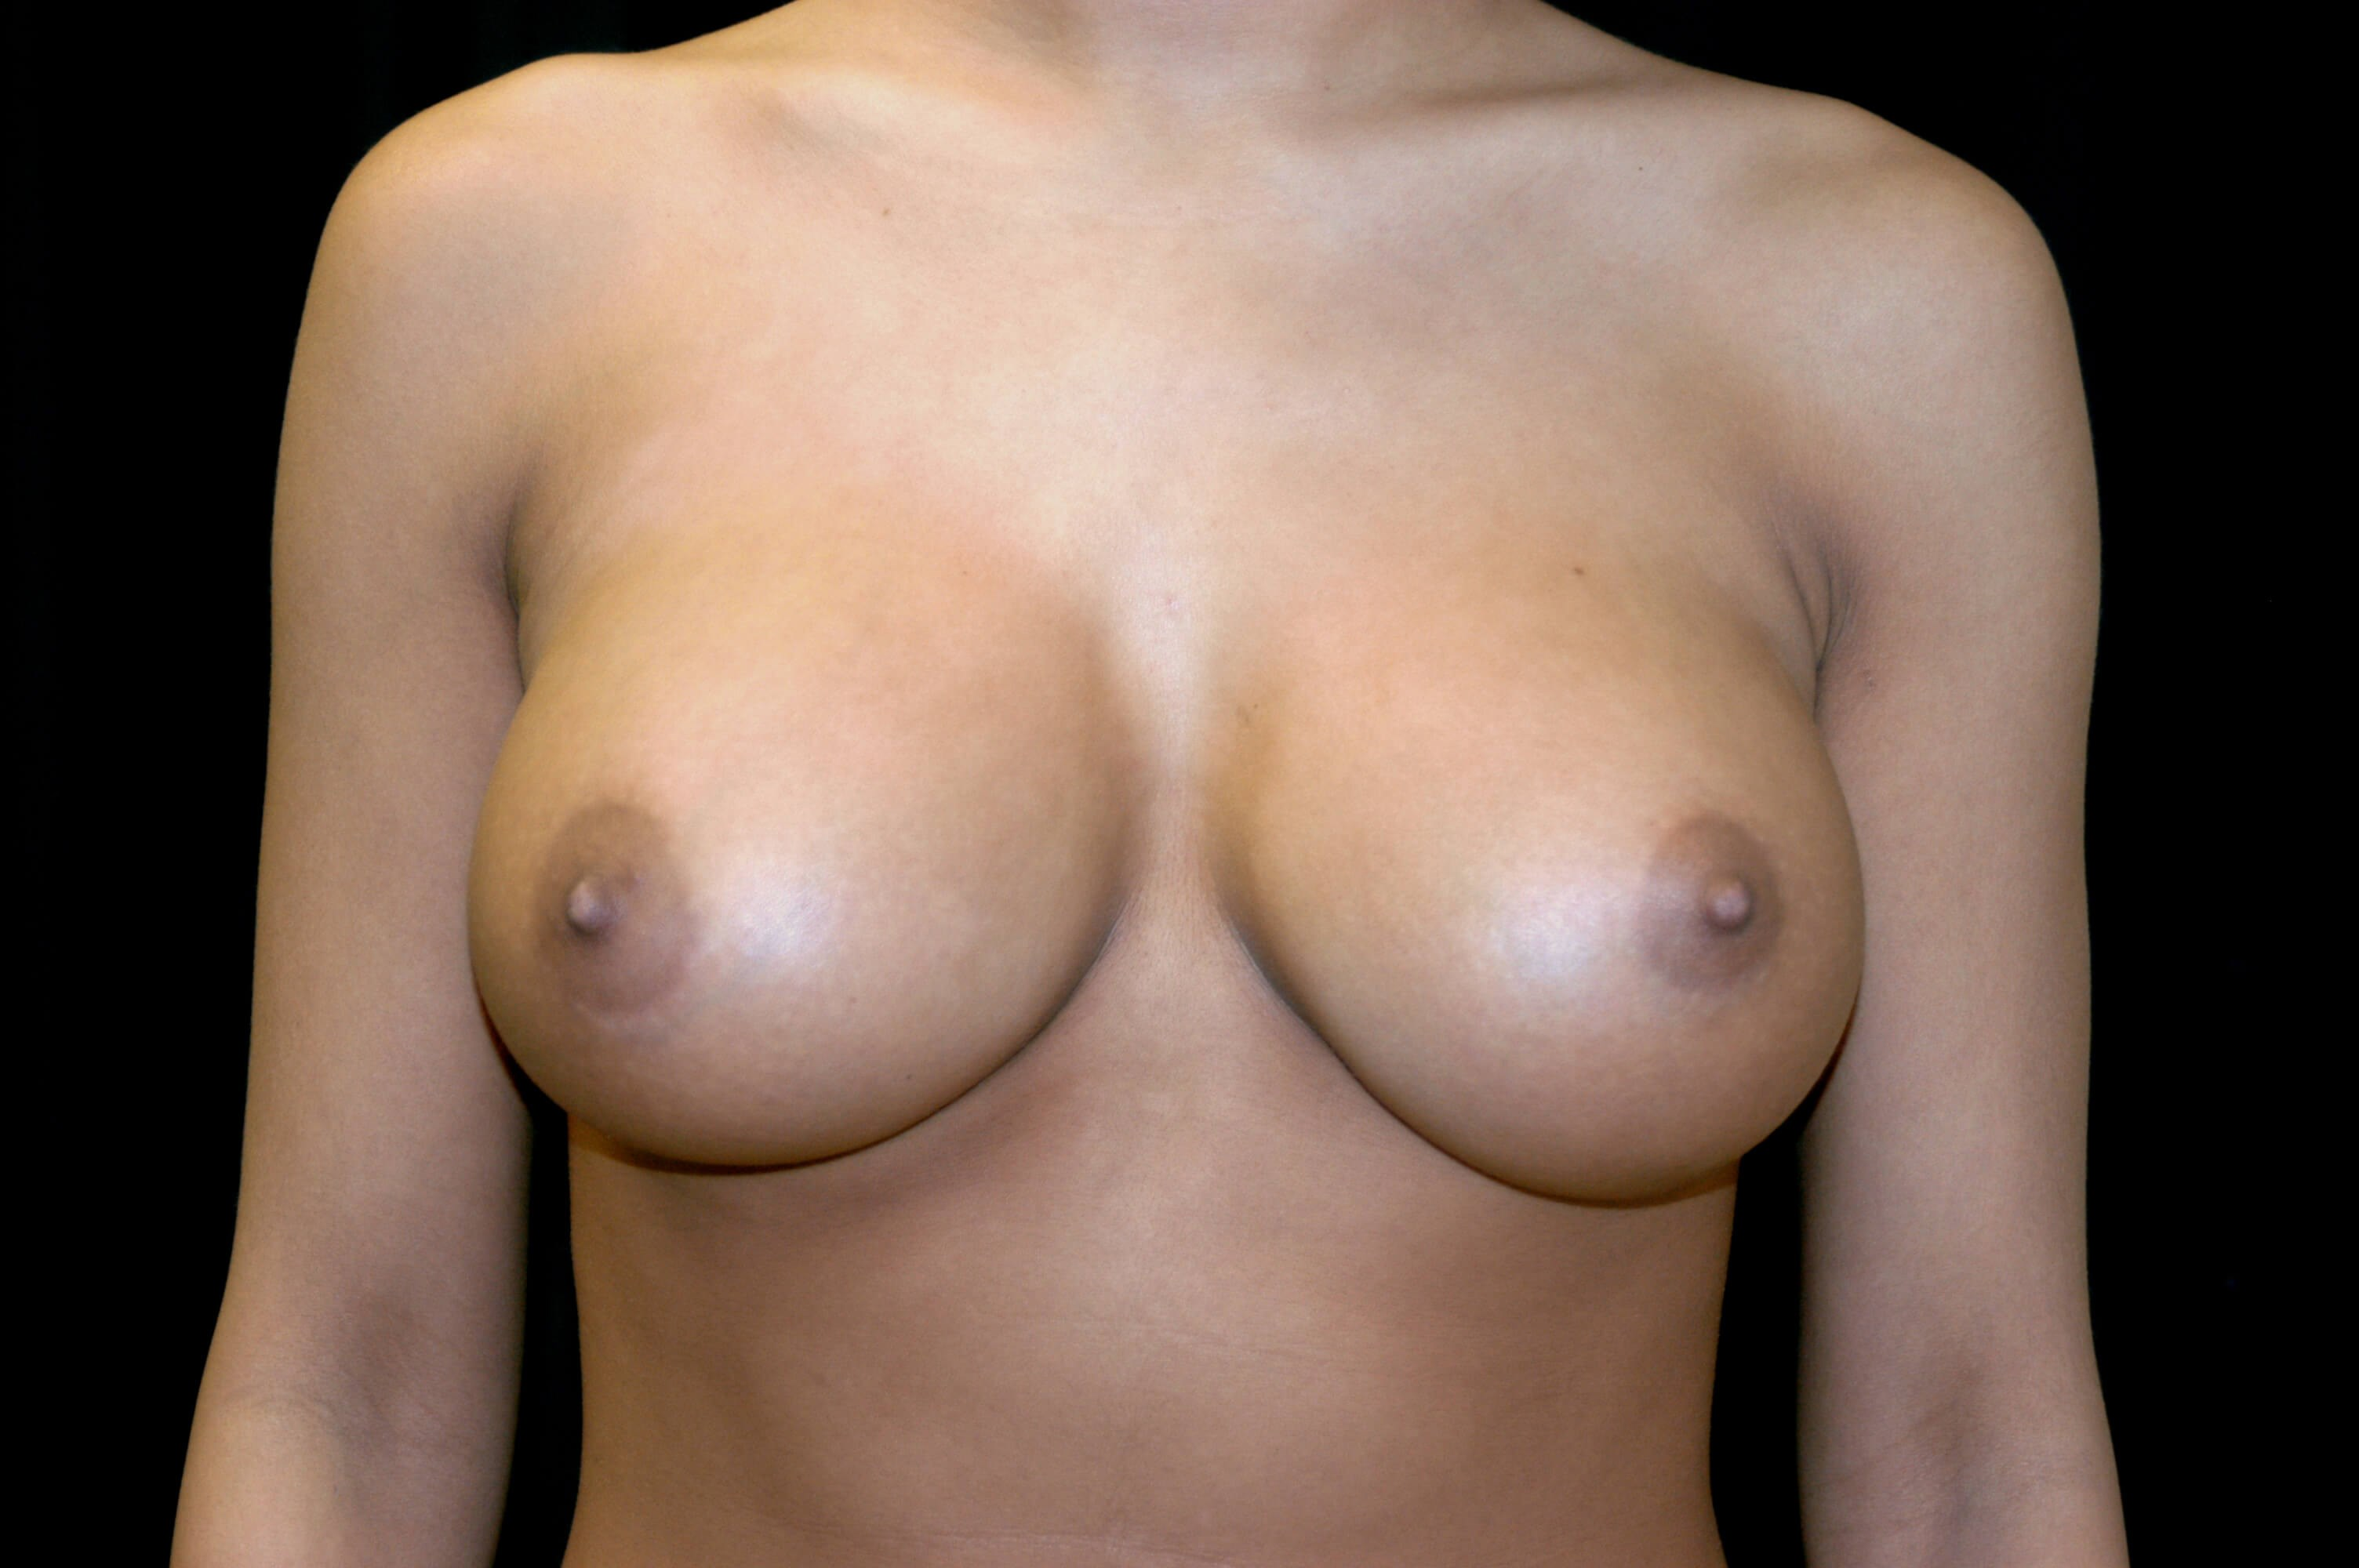 DALLAS TEXAS WOMAN HAS BREAST REVISION SURGERY FOR DOUBLE BUBBLE CORRECTION